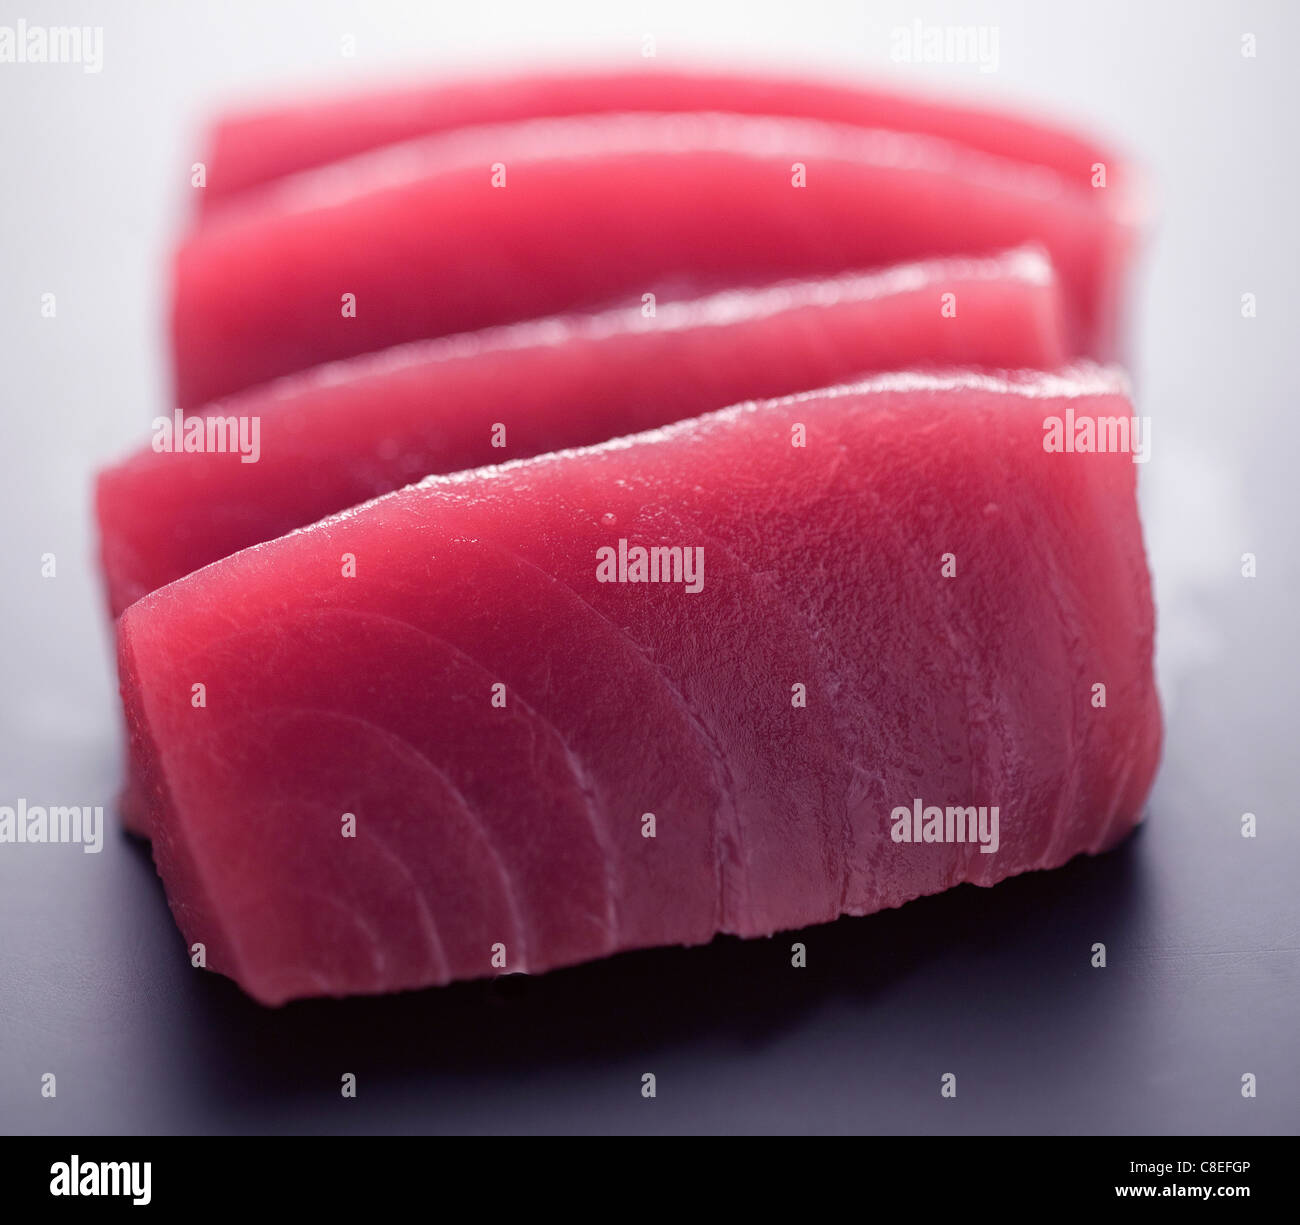 Sashimis de thon rouge Photo Stock